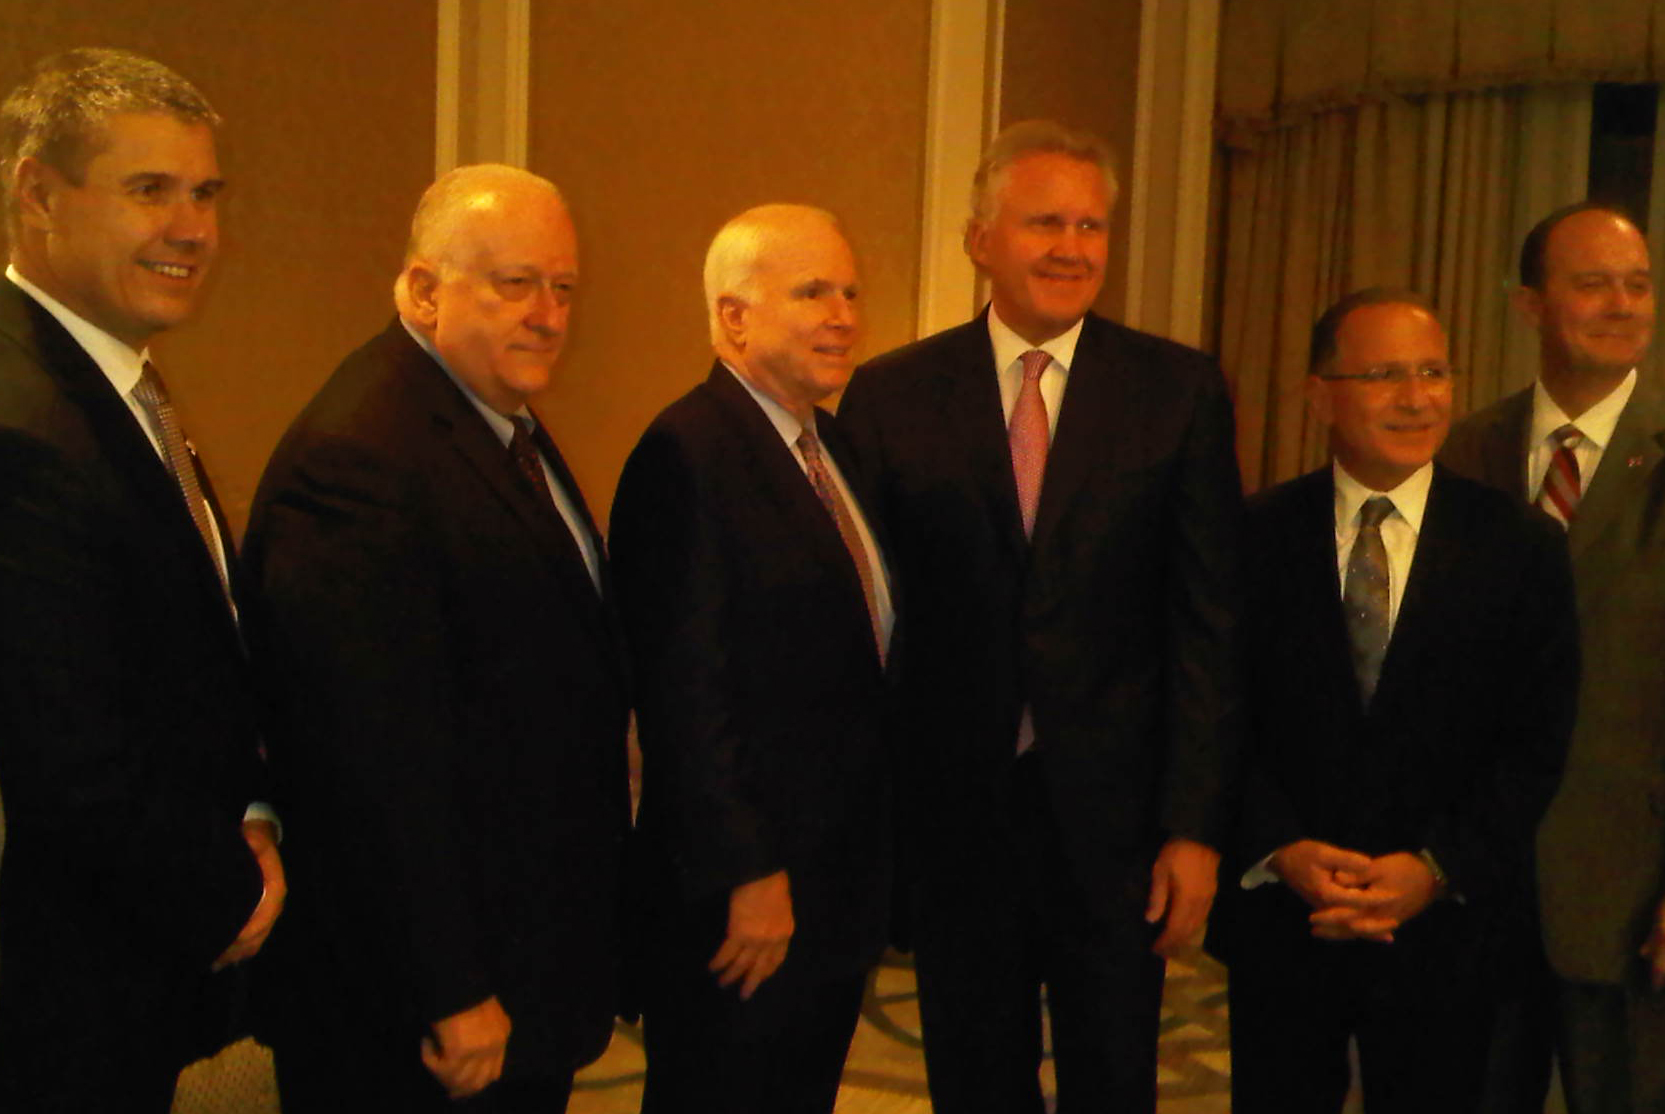 Ed Fuller with Cairo delegation led by Senators John McCain and John Kerry with representatives from Bechtel, Mobil, Coca-Cola, Dow Chemical and General Electric.  Image by Taylorbushman via Wikimedia Commons